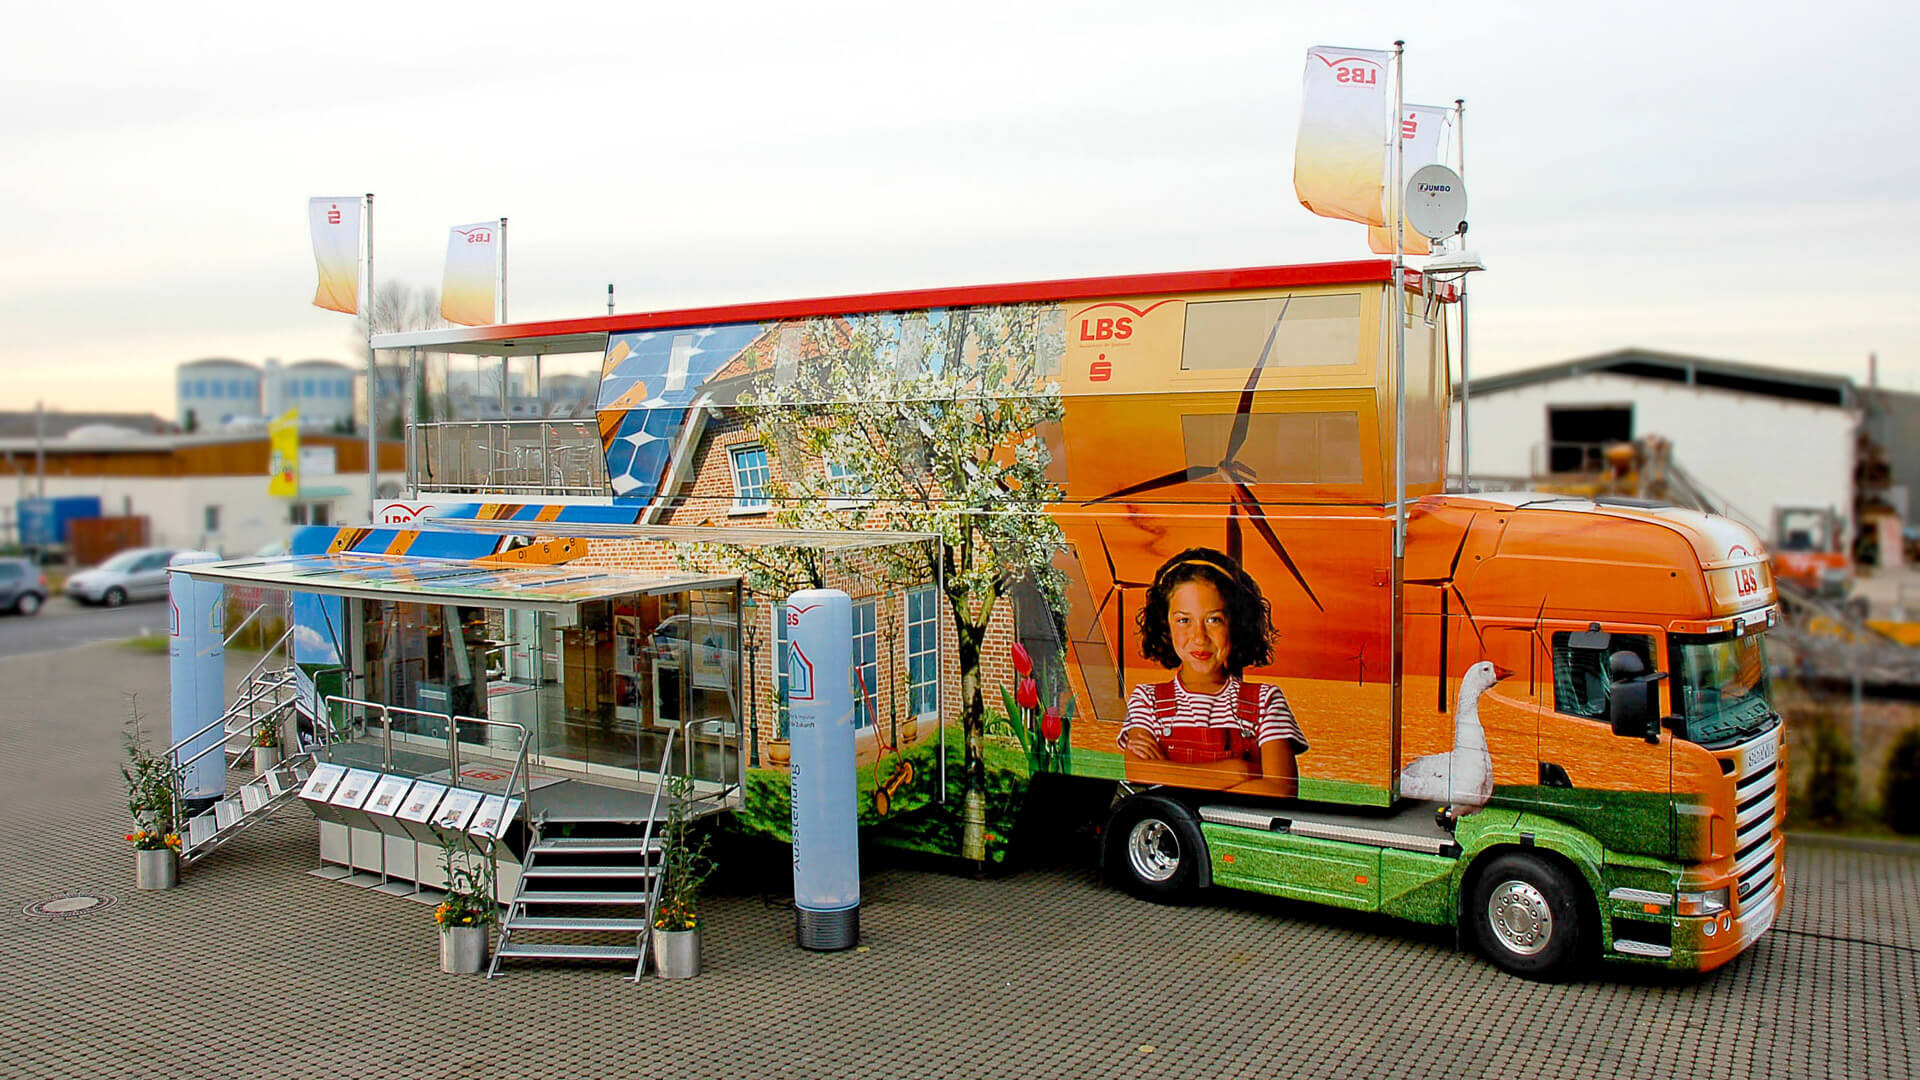 mobile-Filiale mobile-Zweigstelle mobiles-Marketing Promotion Infomobil Truck Roadshow Showtruck